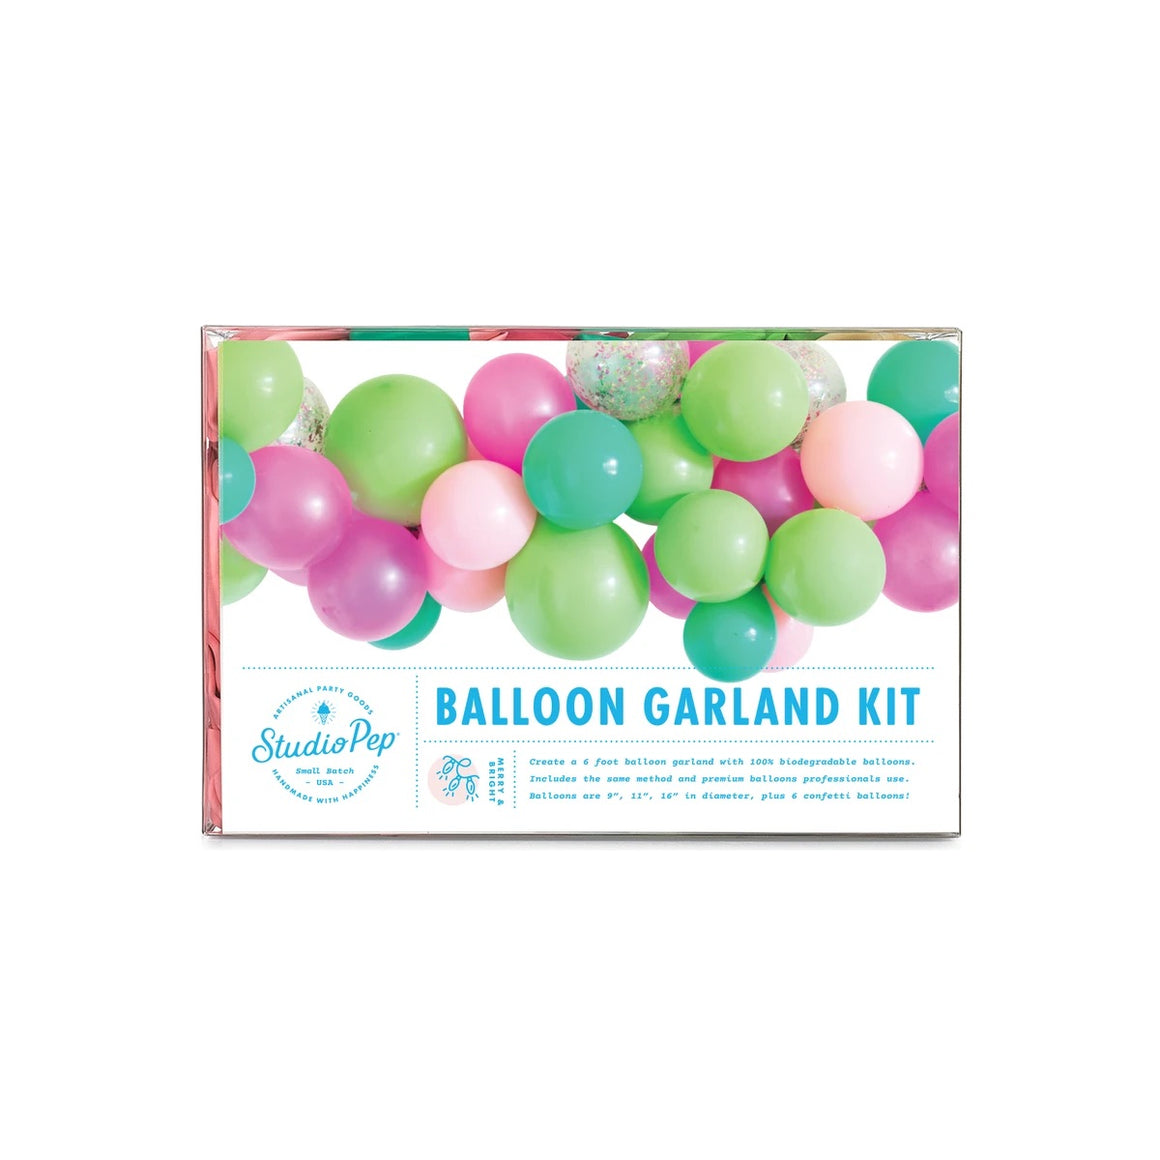 BALLOON GARLAND - MERRY + BRIGHT STUDIO PEP